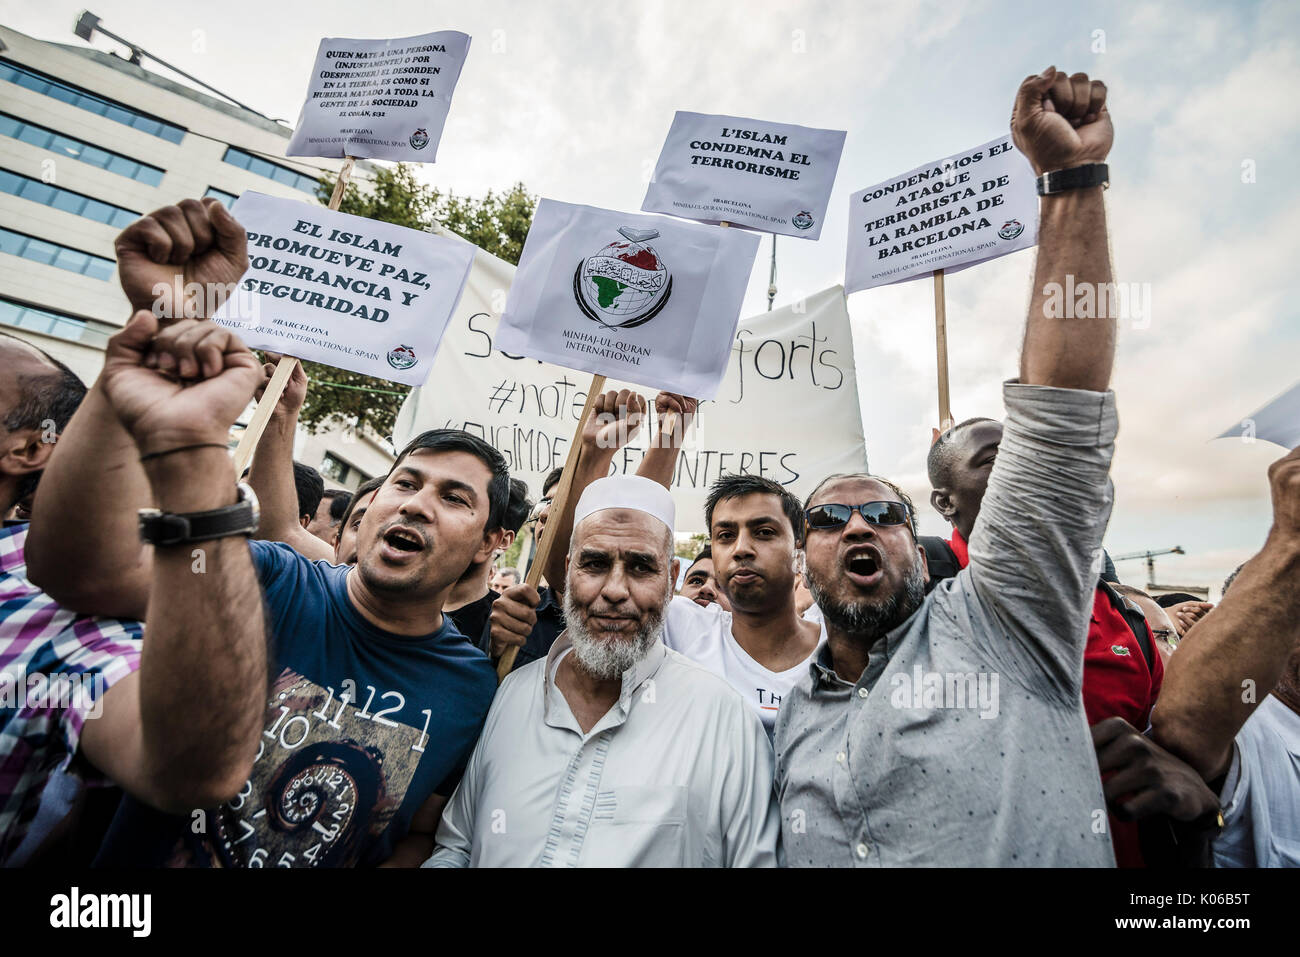 Barcelona, Spain. 21st Aug, 2017. Muslim protestors with their placards condemn the recent jihadist terror attacks in Barcelona and Cambrils which killed 15 people and injured more than 100 shouting slogans at Catalonia Square Credit: Matthias Oesterle/Alamy Live News - Stock Image